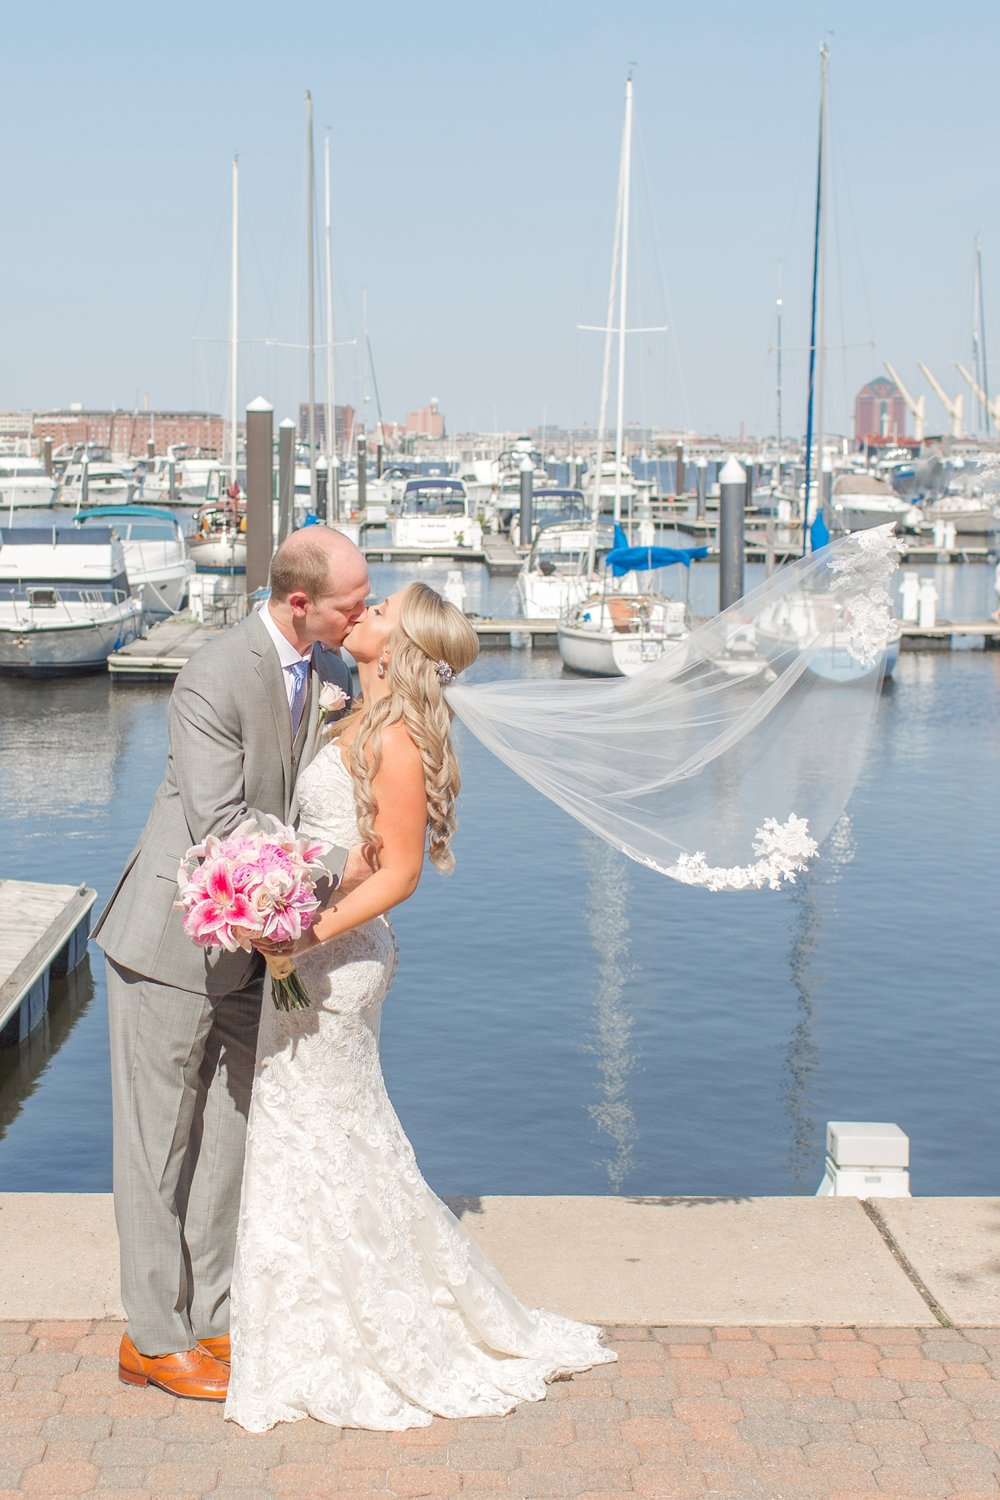 Pessina Wedding 3-Bride & Groom Portraits-437.jpg_baltimore-maryland-wedding-photography-anna-grace-photography-photo.jpg